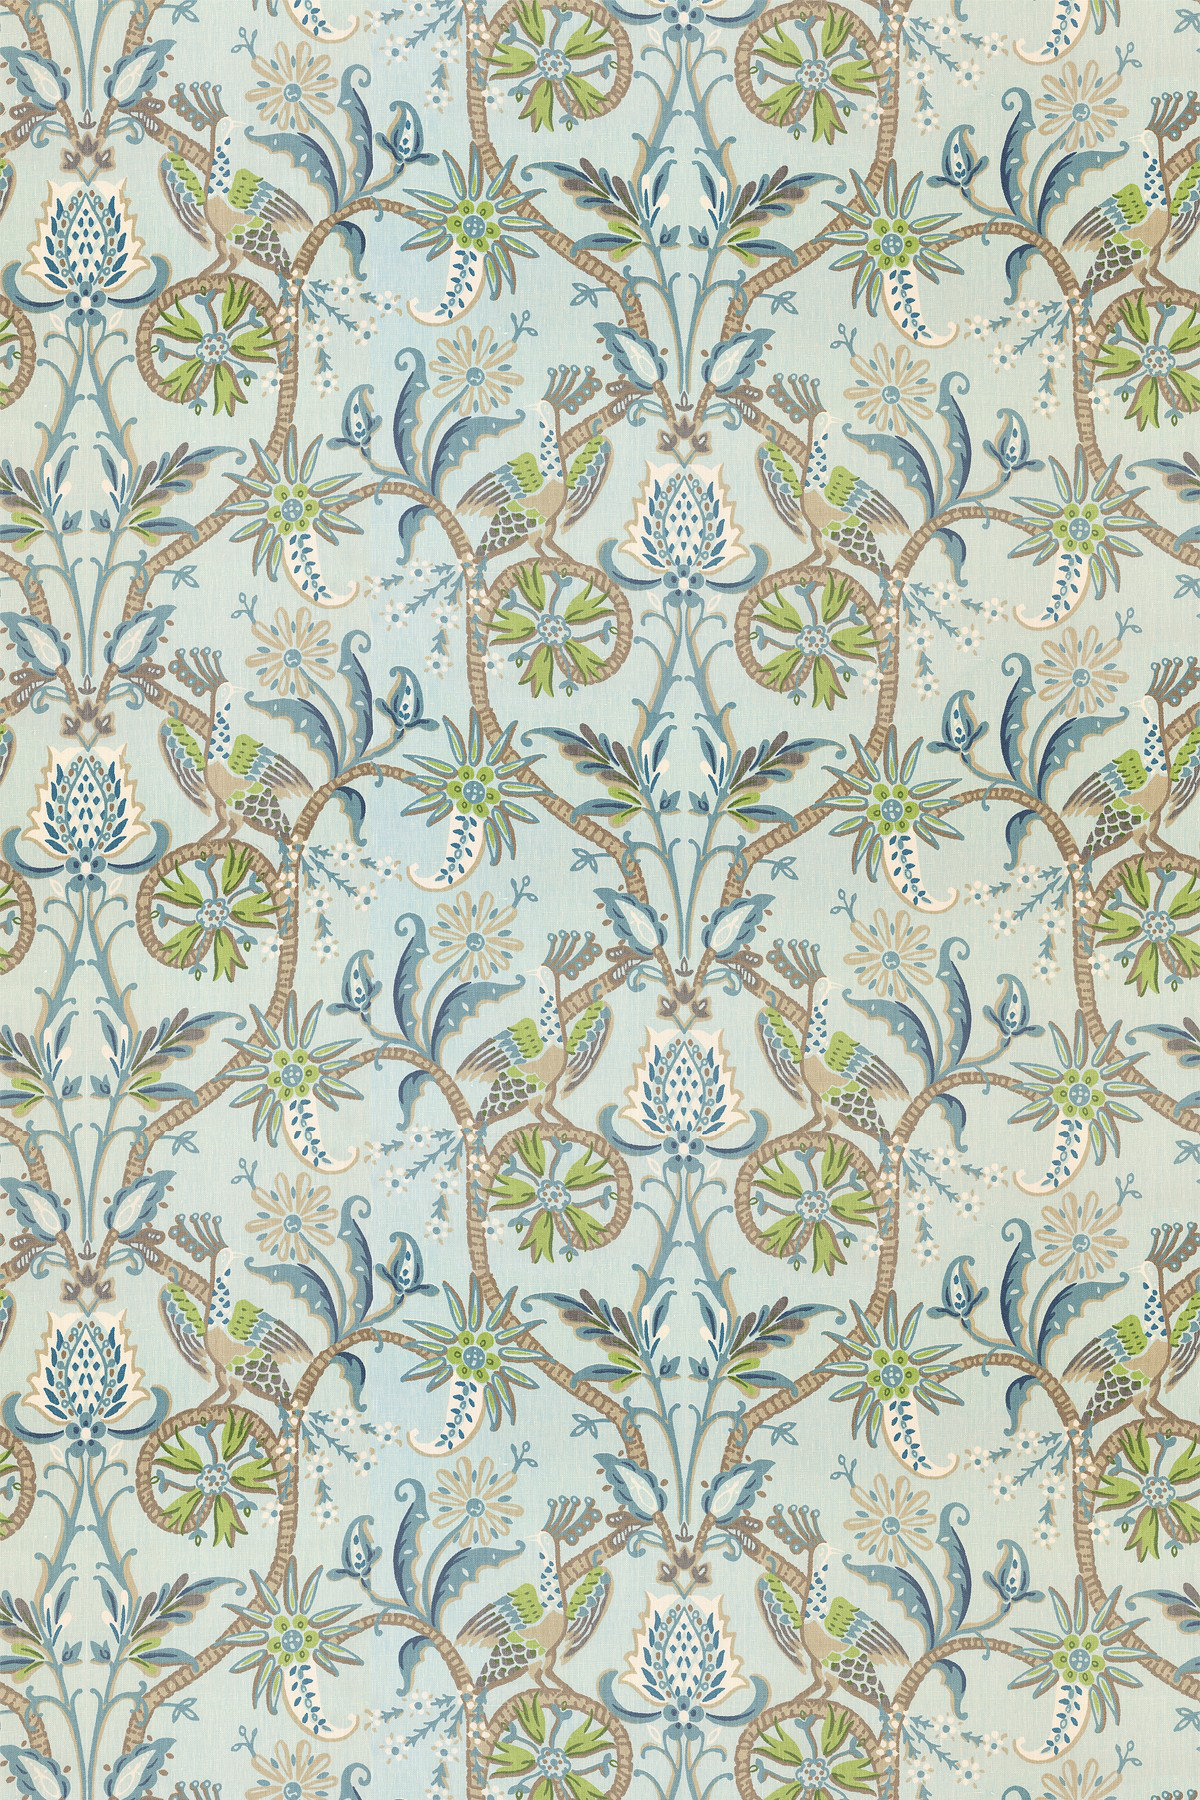 Image of Thibaut Fabric Peacock Garden, F924360